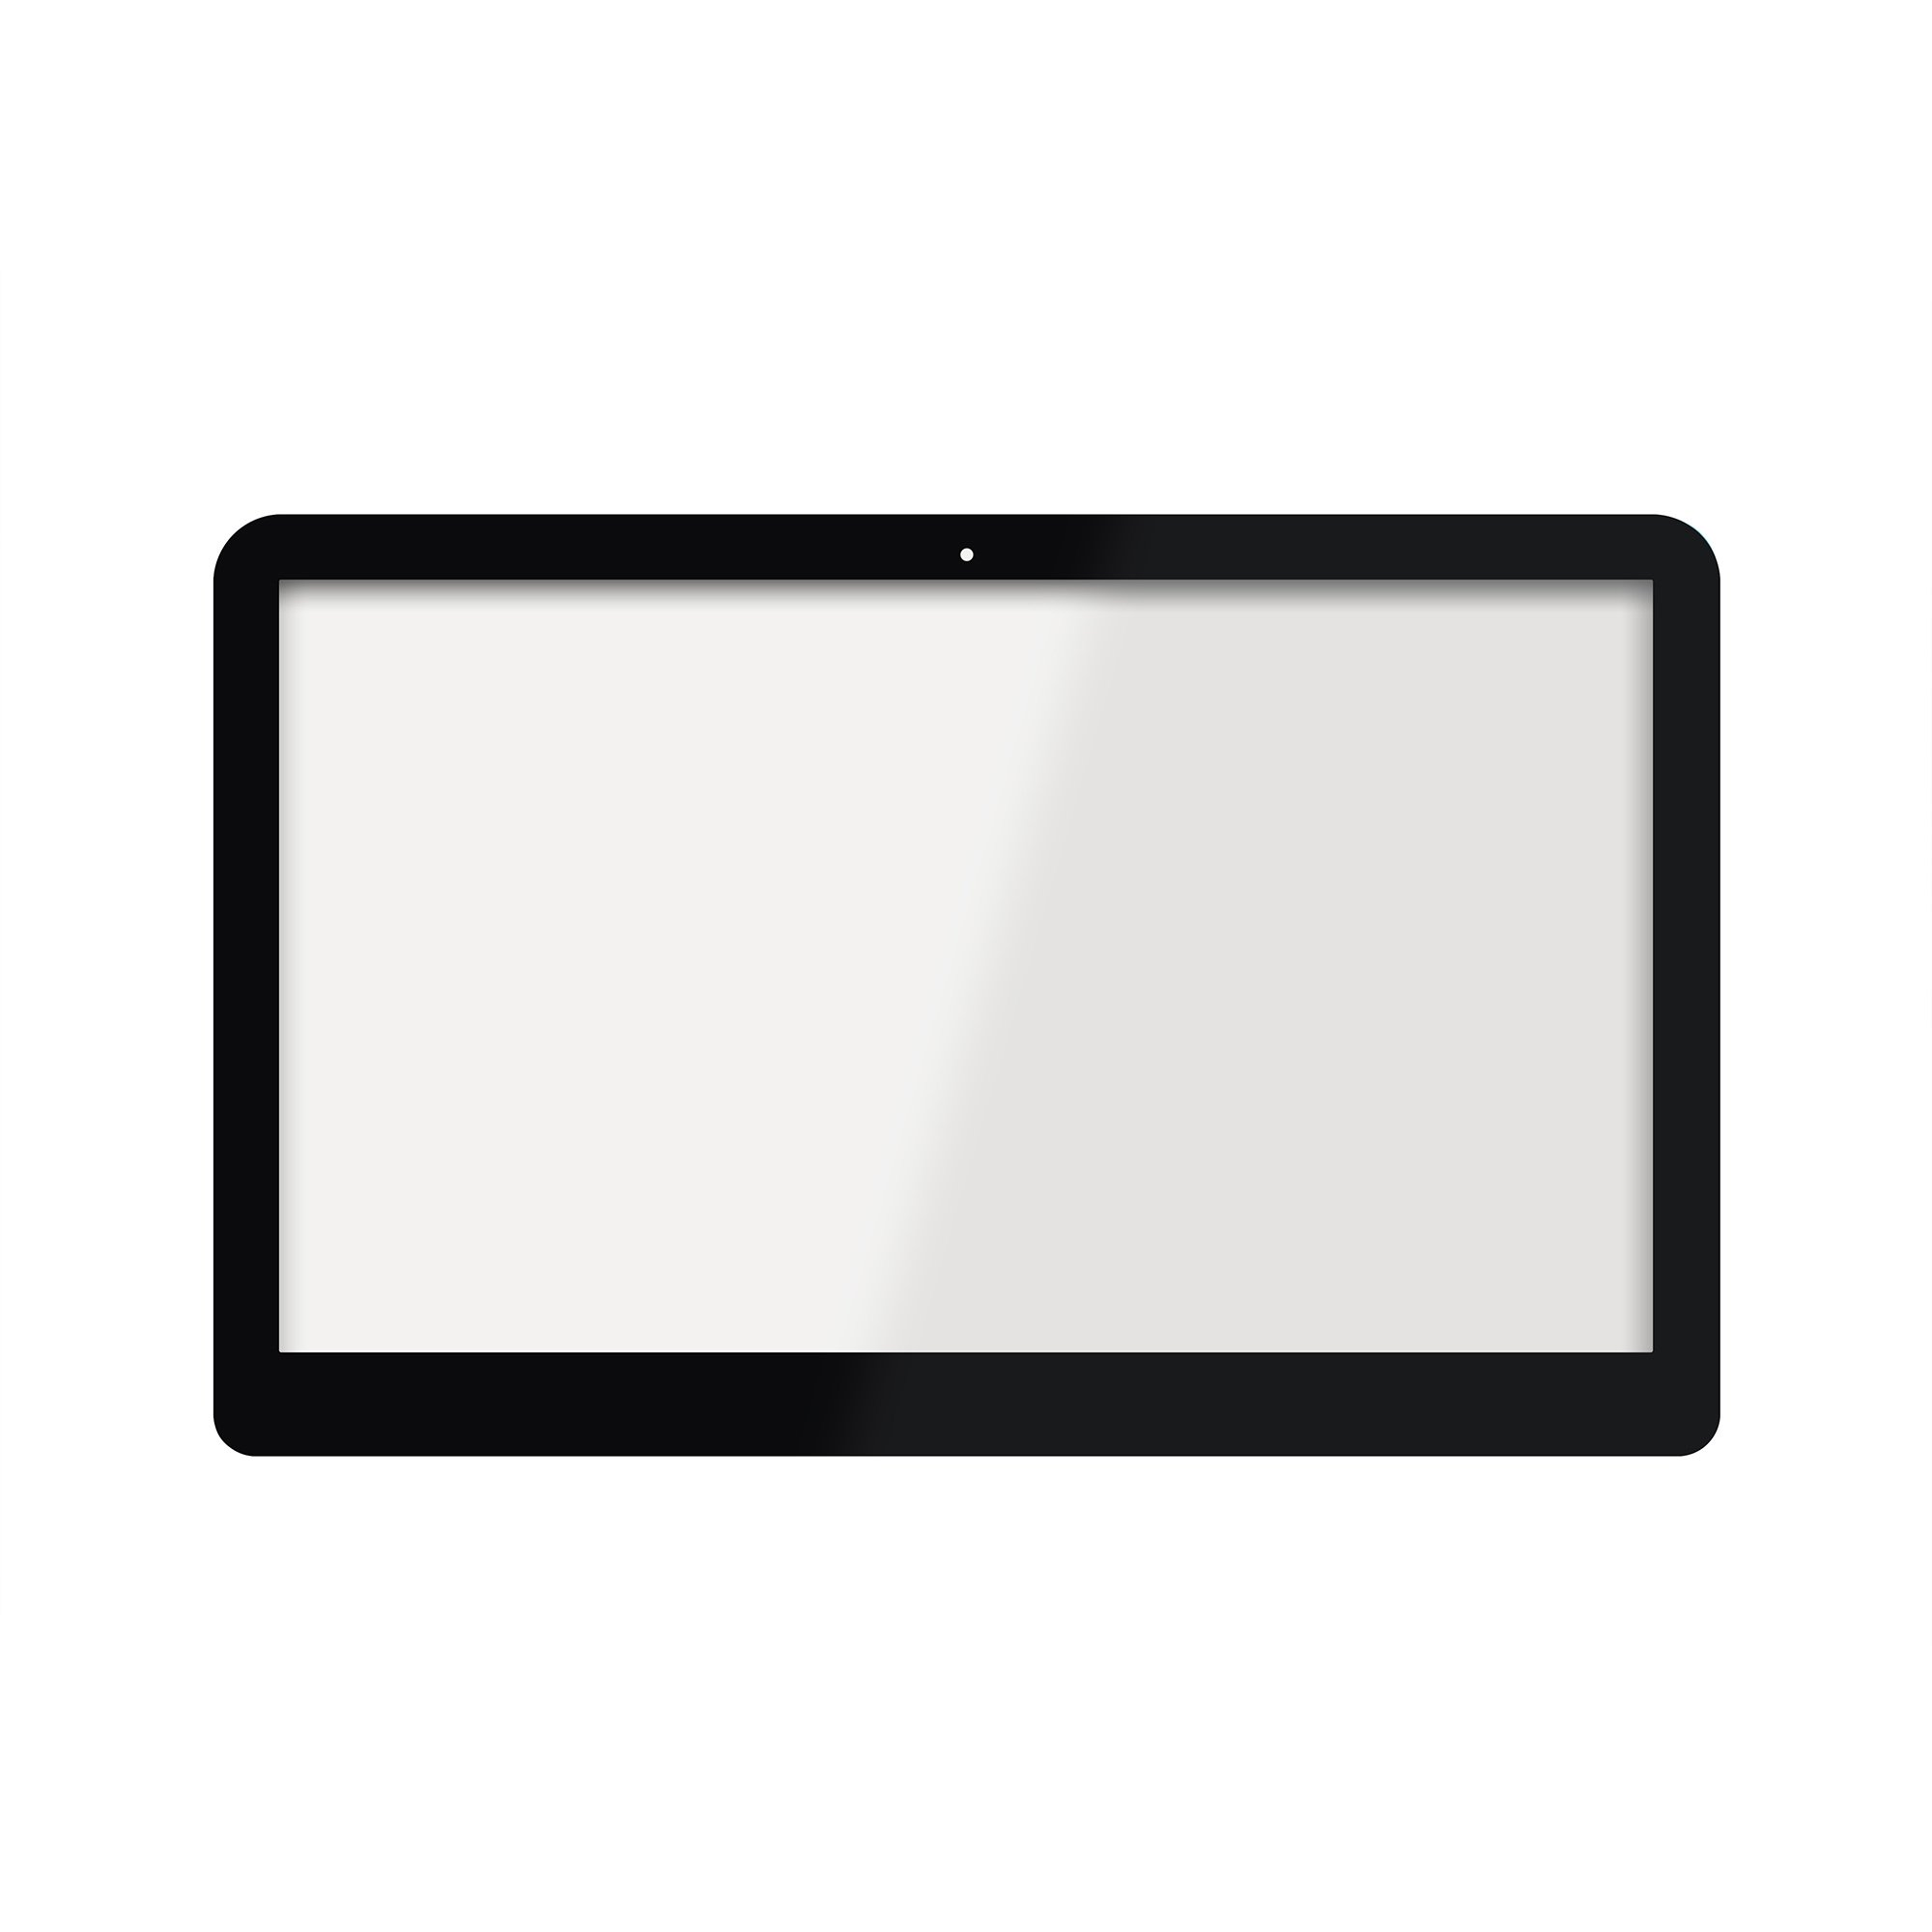 LCDOLED 15.6 inch Replacement Touch Screen Digitizer Glass Panel + Bezel for HP Envy X360 M6-W101DX M6-W102DX M6-W103DX M6-W104DX (with Touch Control Board)